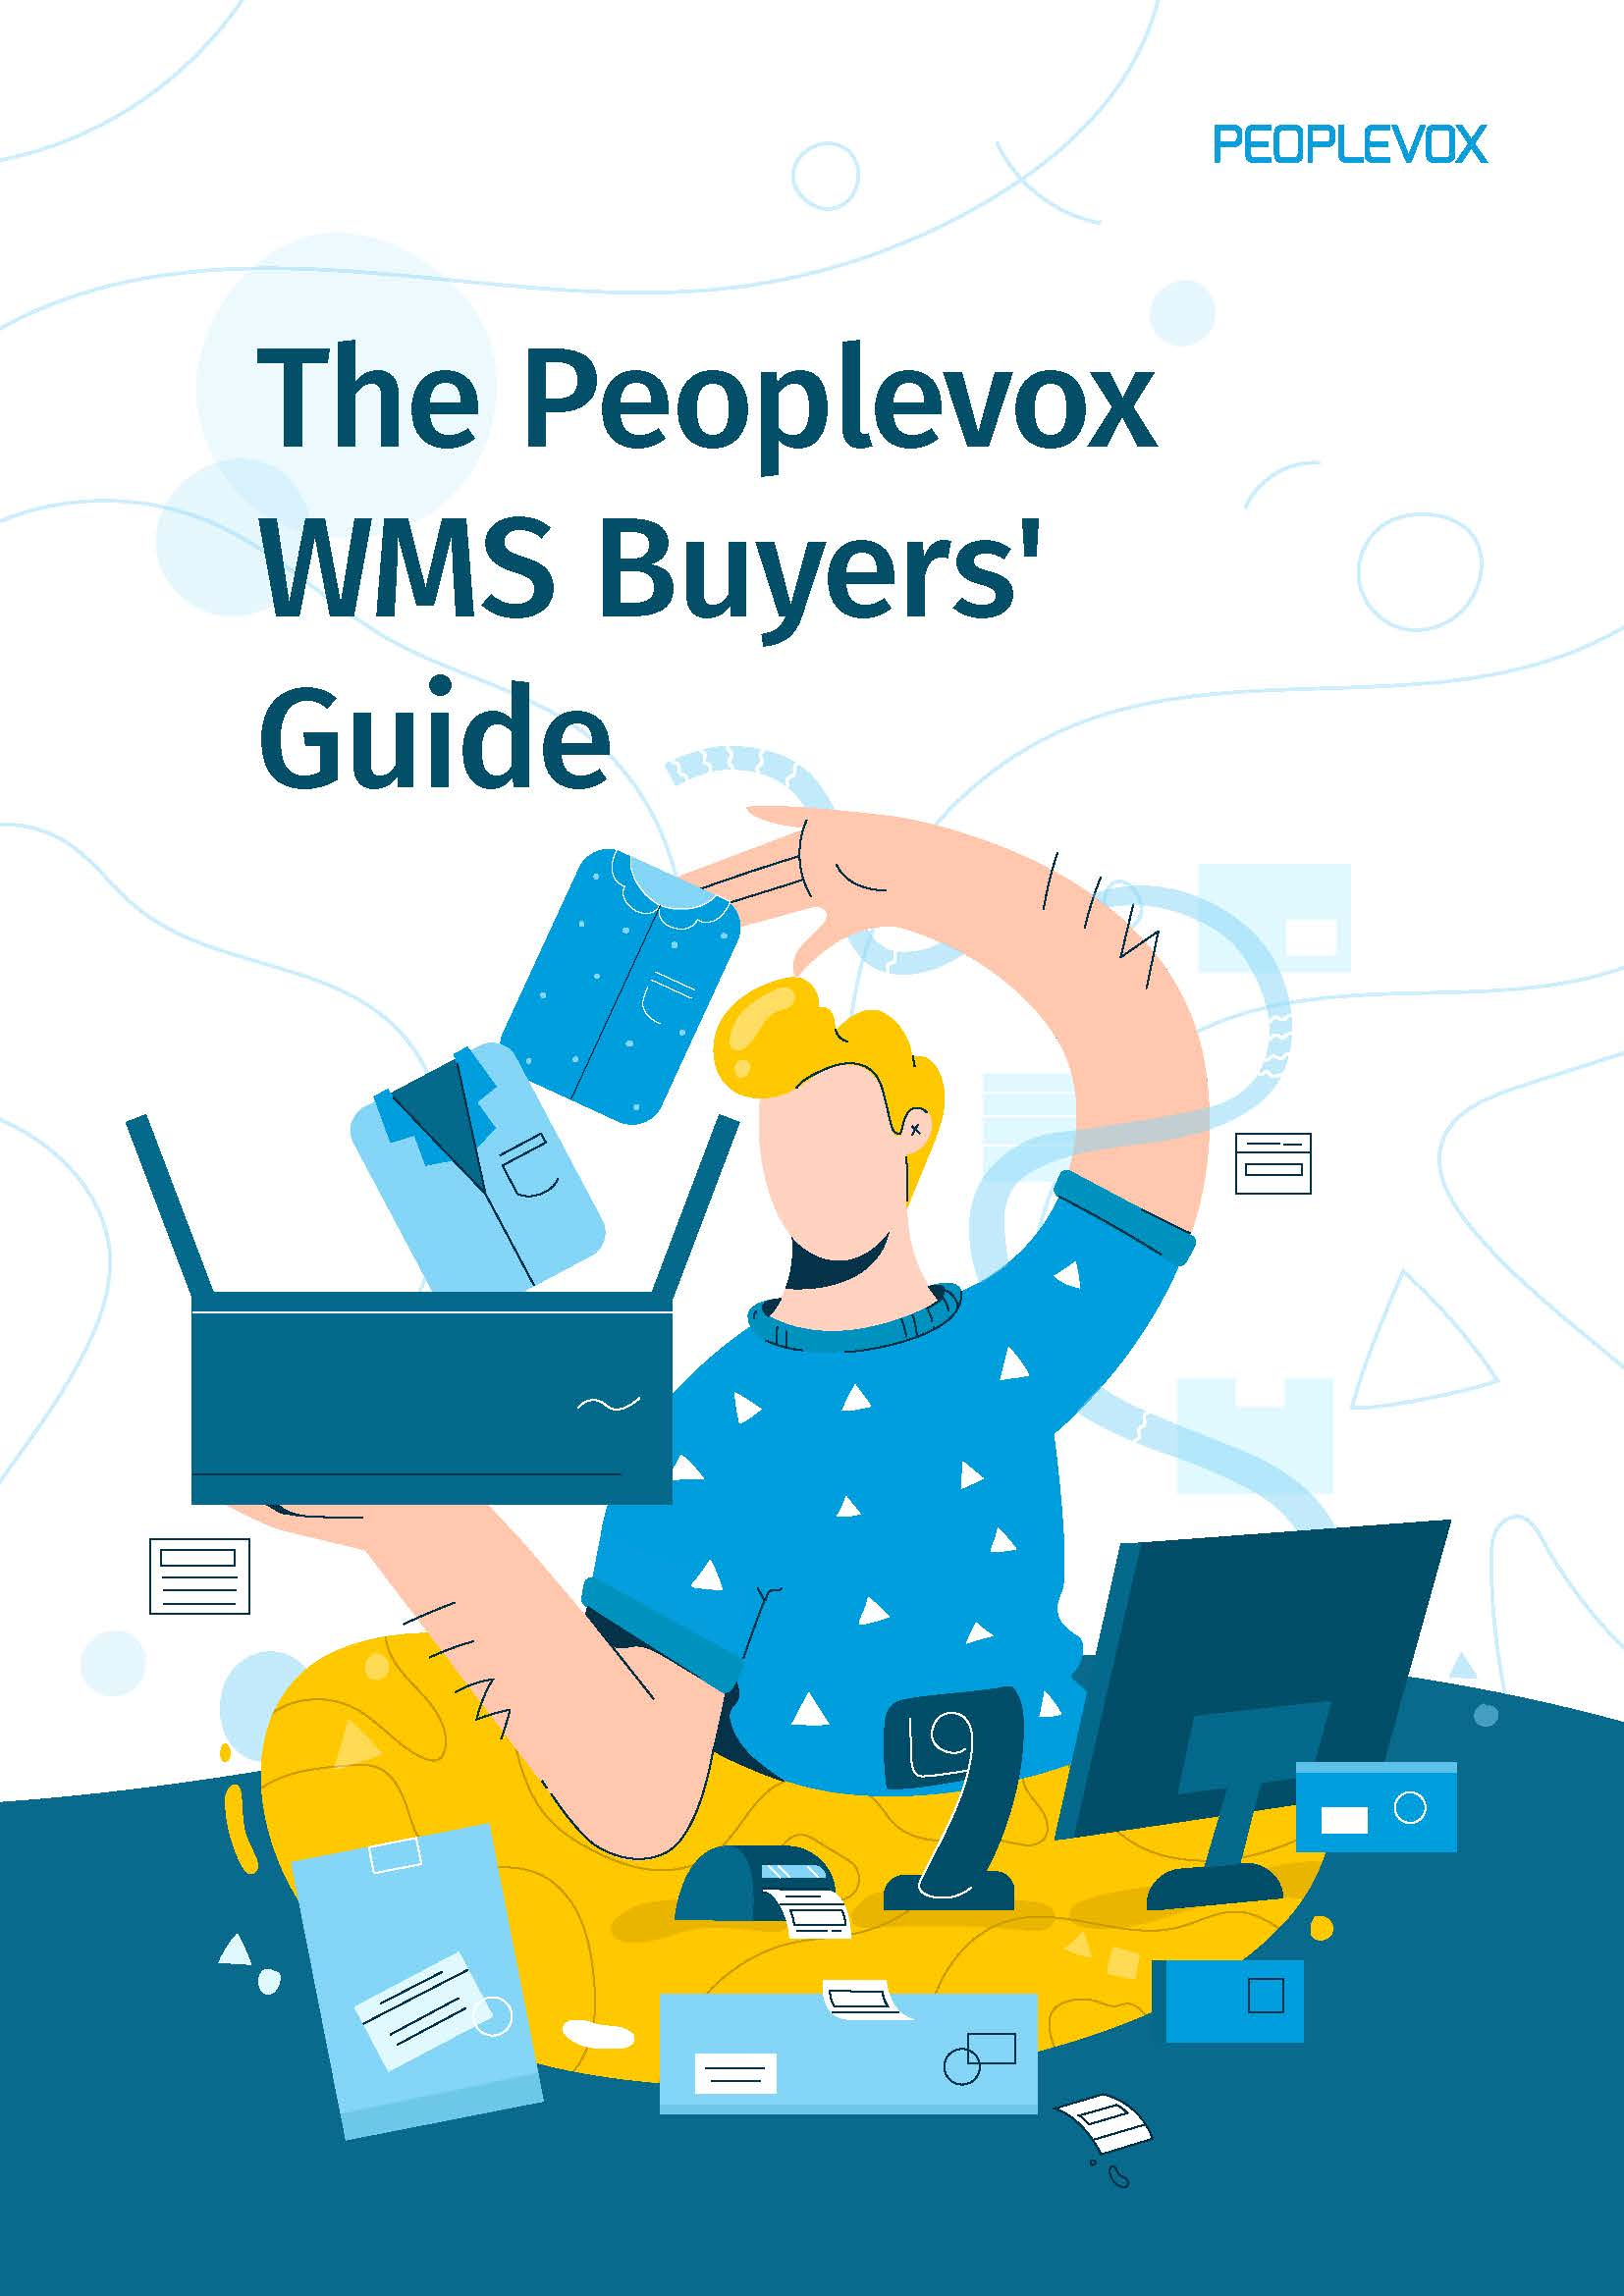 wms buyers guide